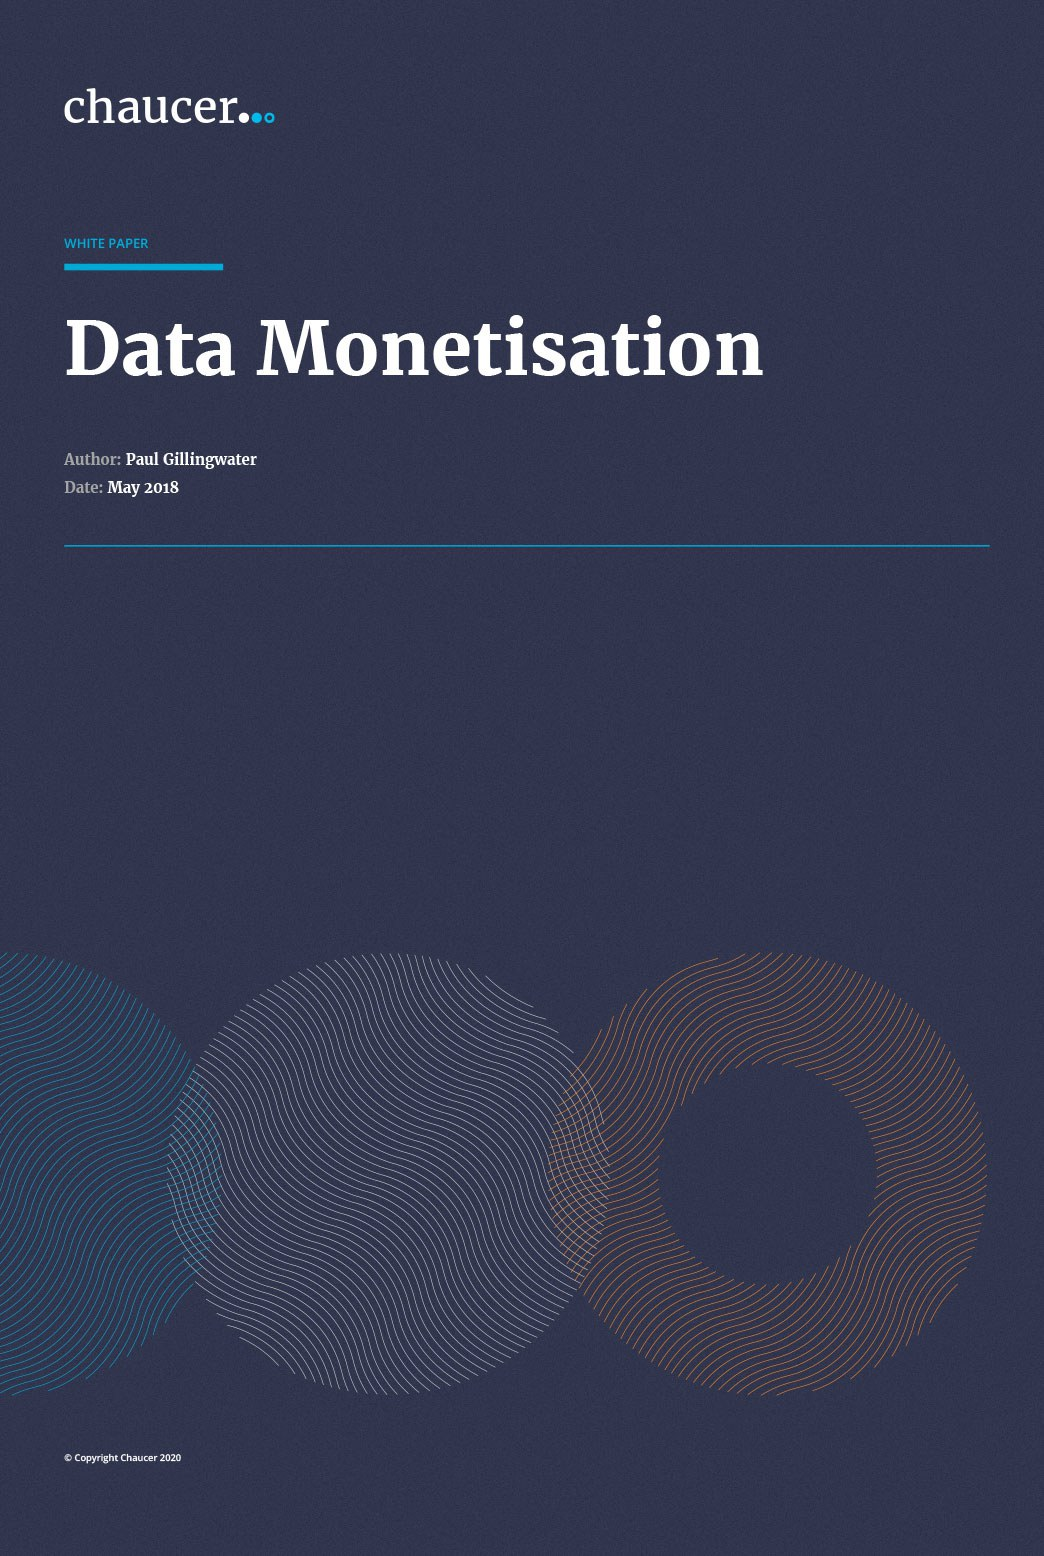 The Age Of Information: Data Monetisation